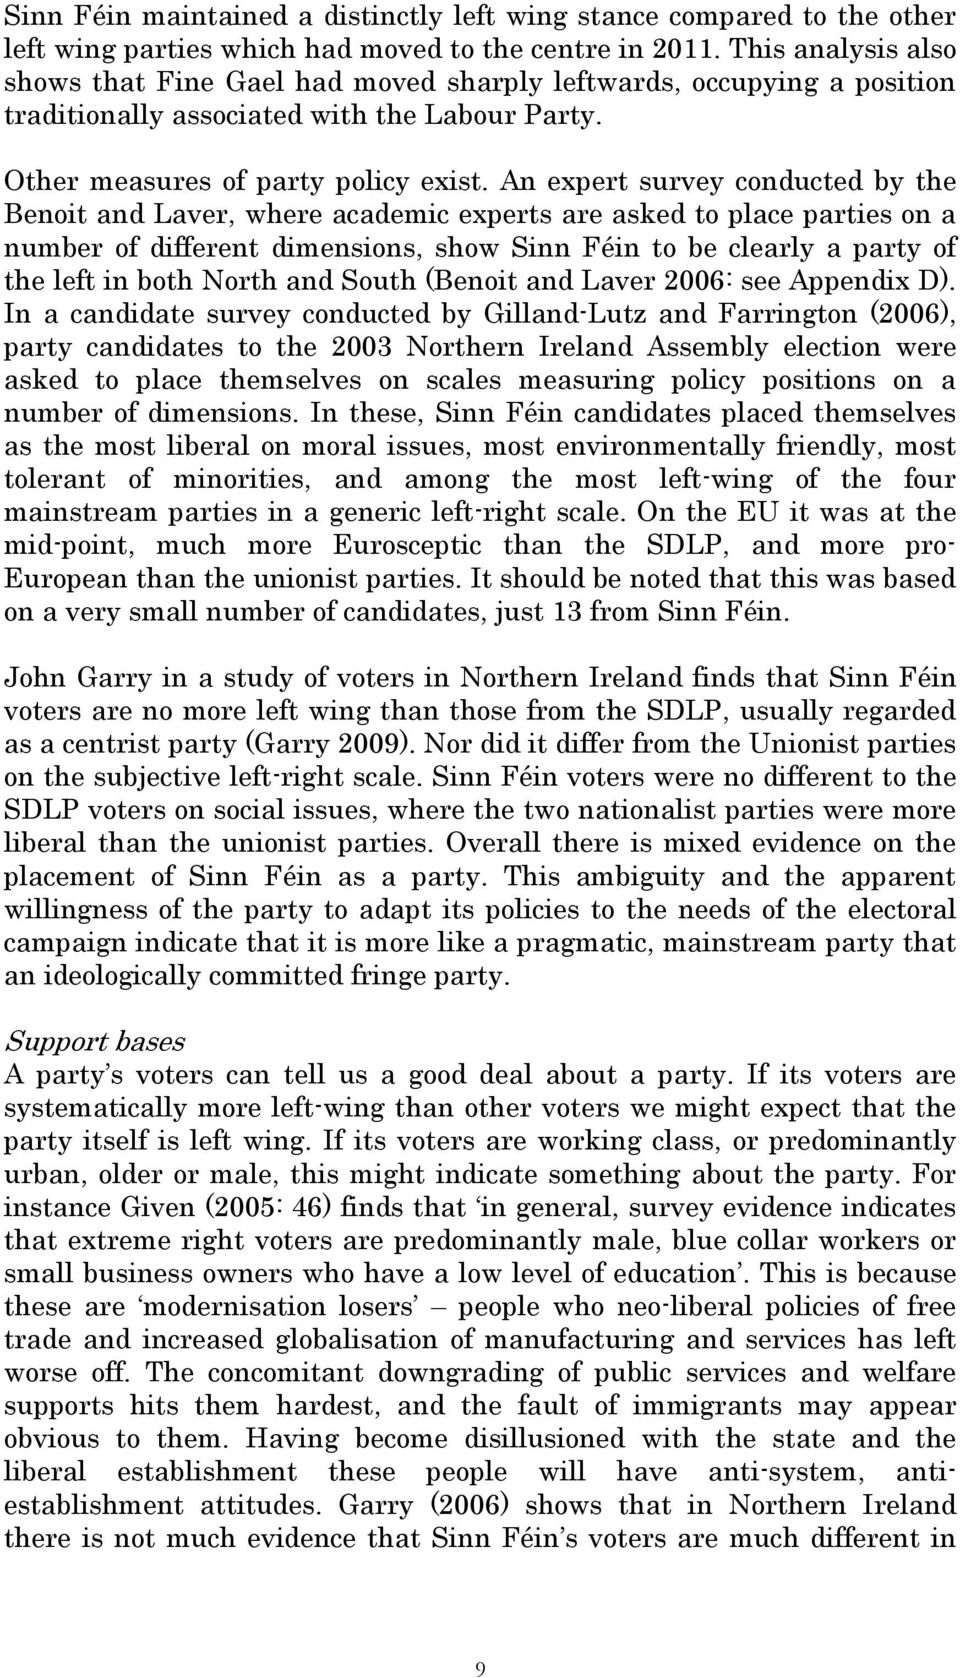 An expert survey conducted by the Benoit and Laver, where academic experts are asked to place parties on a number of different dimensions, show Sinn Féin to be clearly a party of the left in both